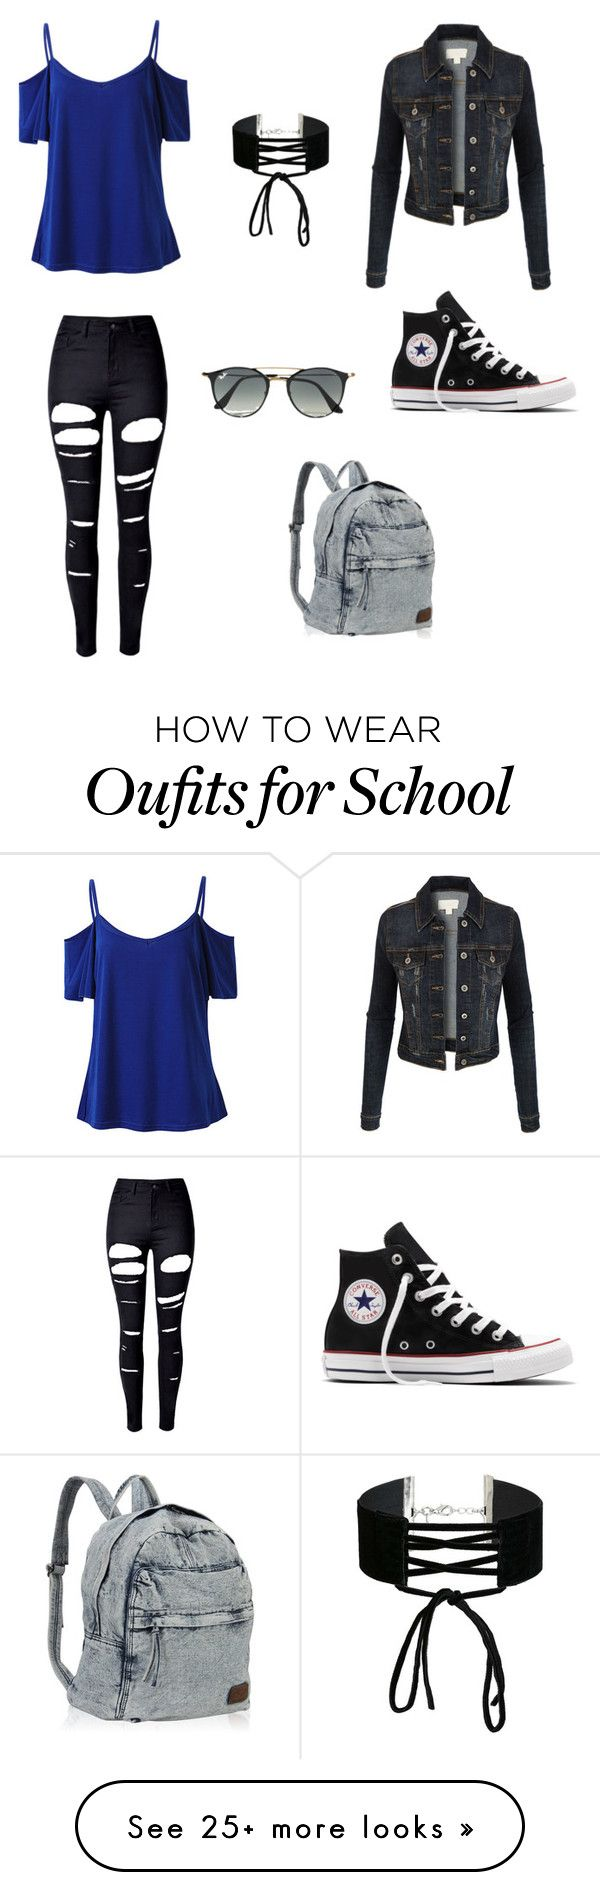 """""""Rock, street style"""" by explorer-2005 on Polyvore featuring WithChic, LE3NO, Miss Selfridge, Ray-Ban, Converse and plus size clothing"""